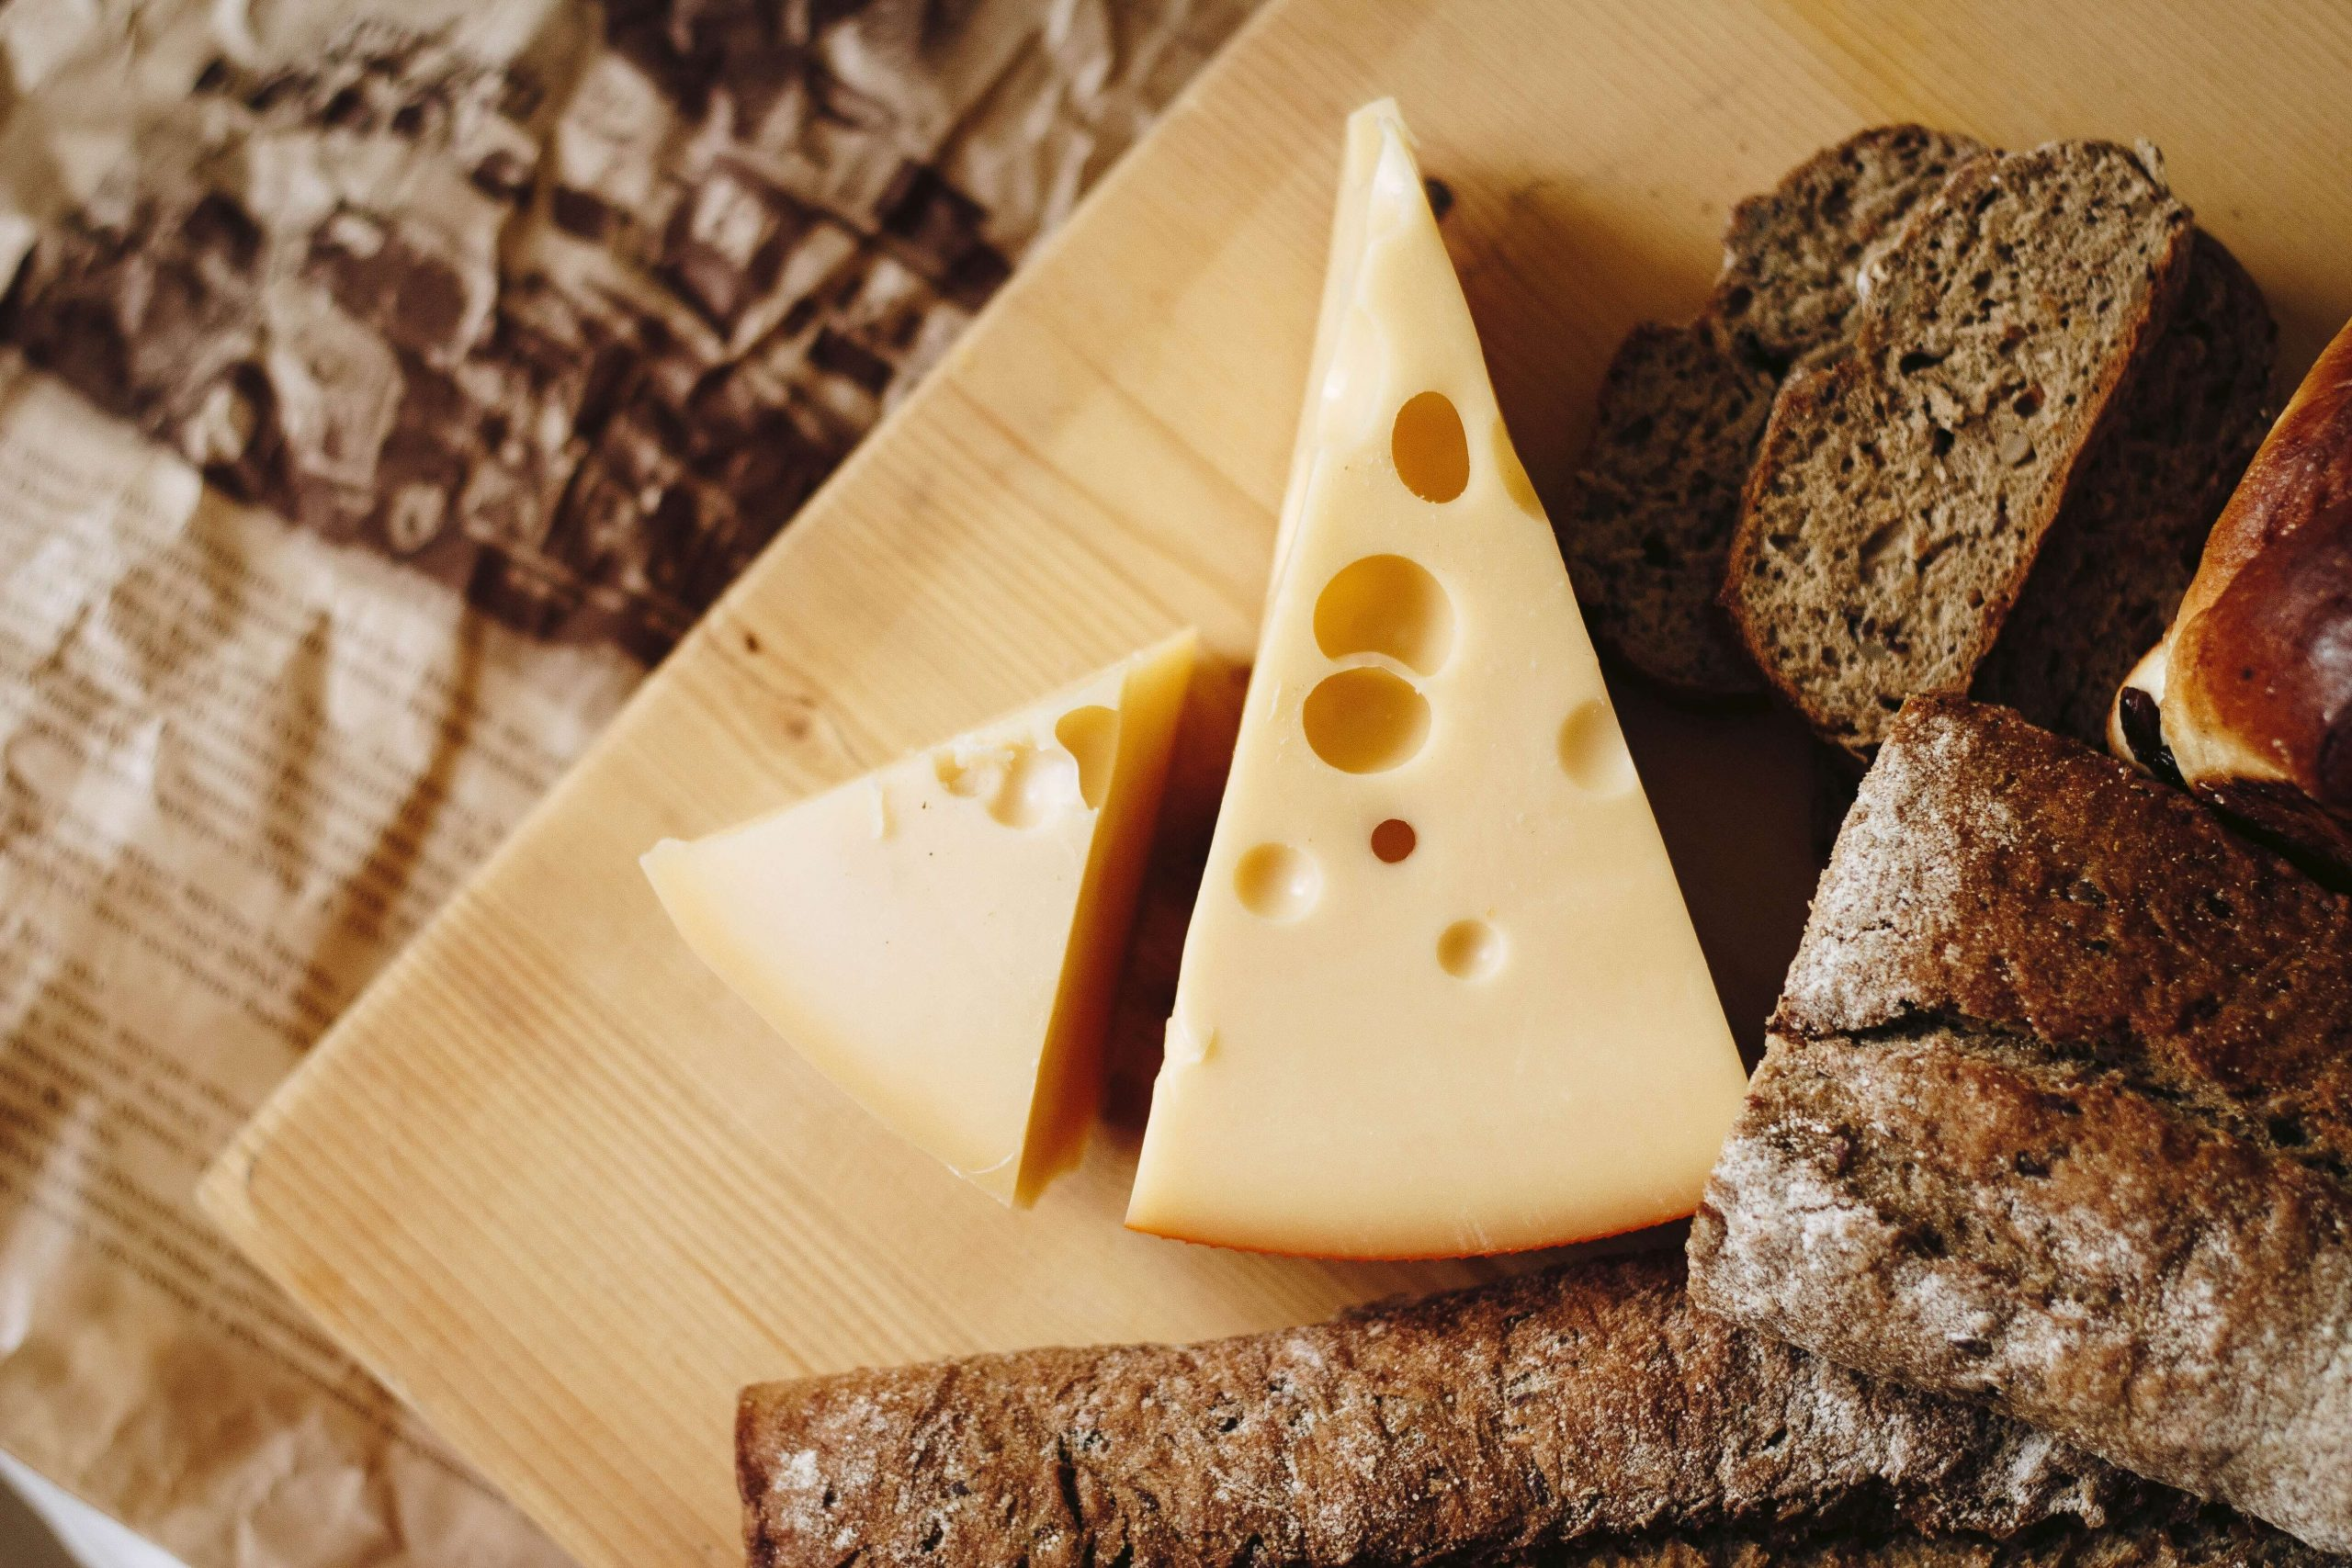 Cheese as High protein foods